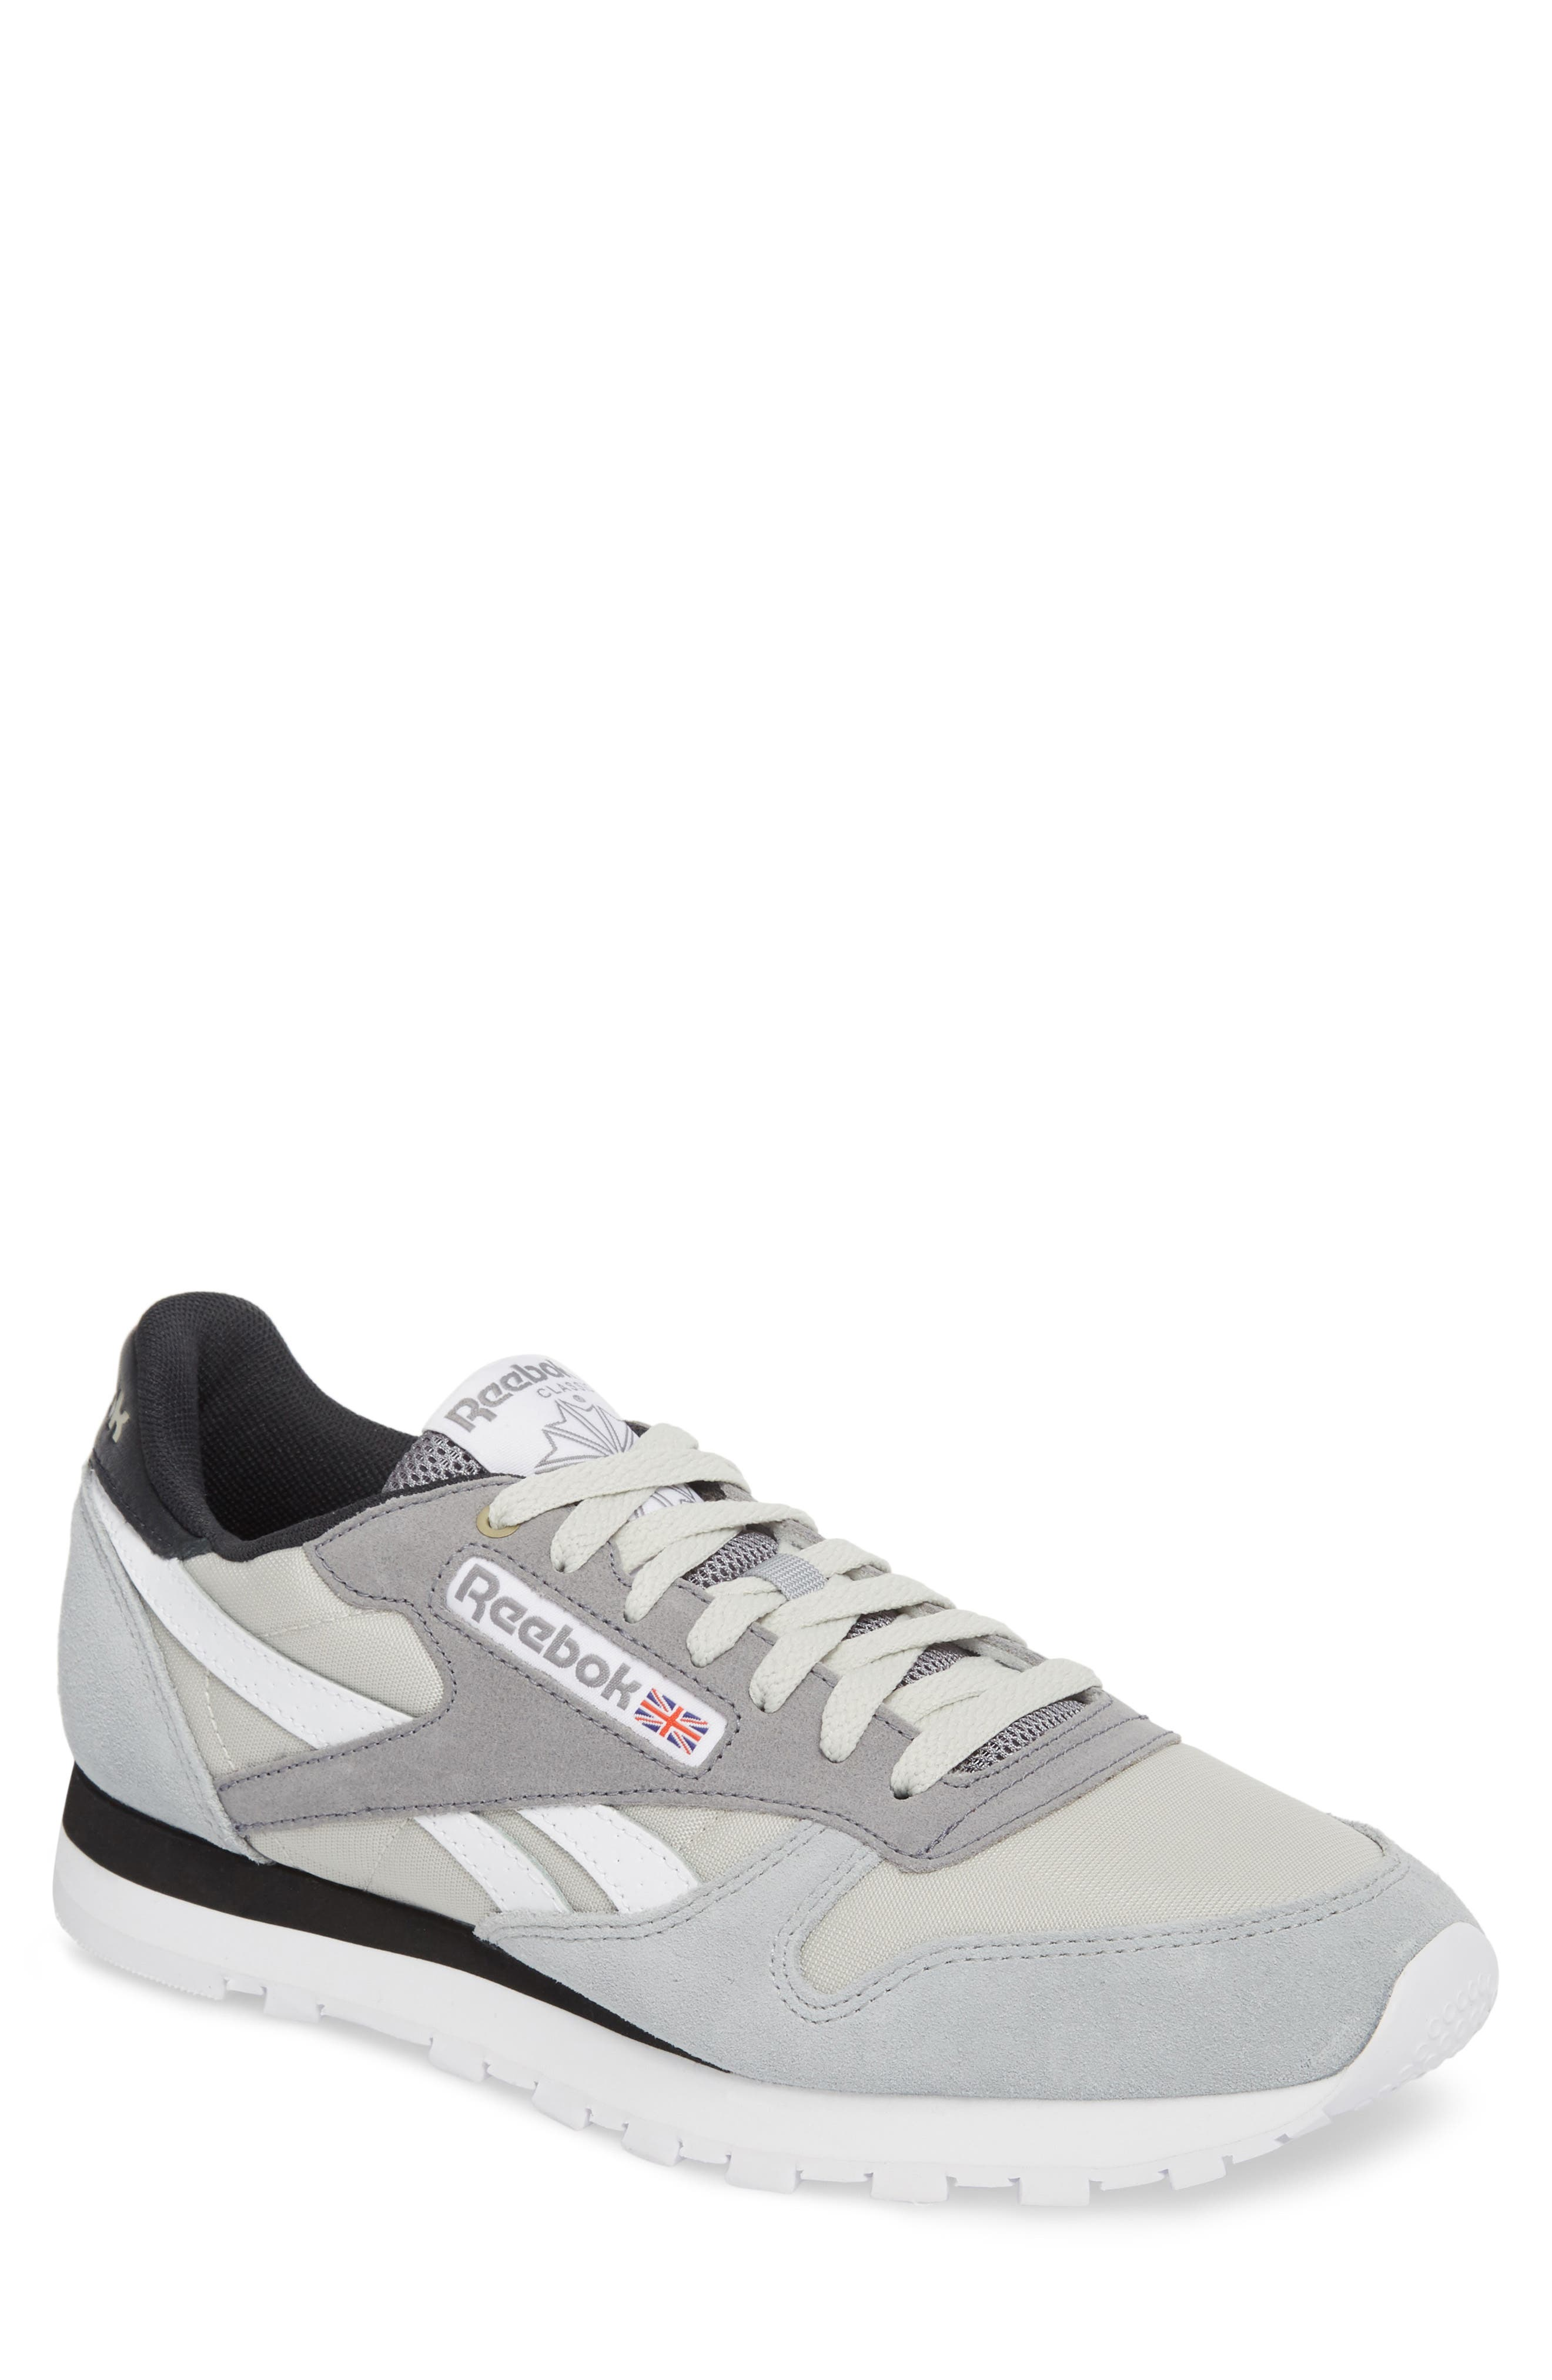 Classic Leather MCCS Sneaker,                             Main thumbnail 1, color,                             020